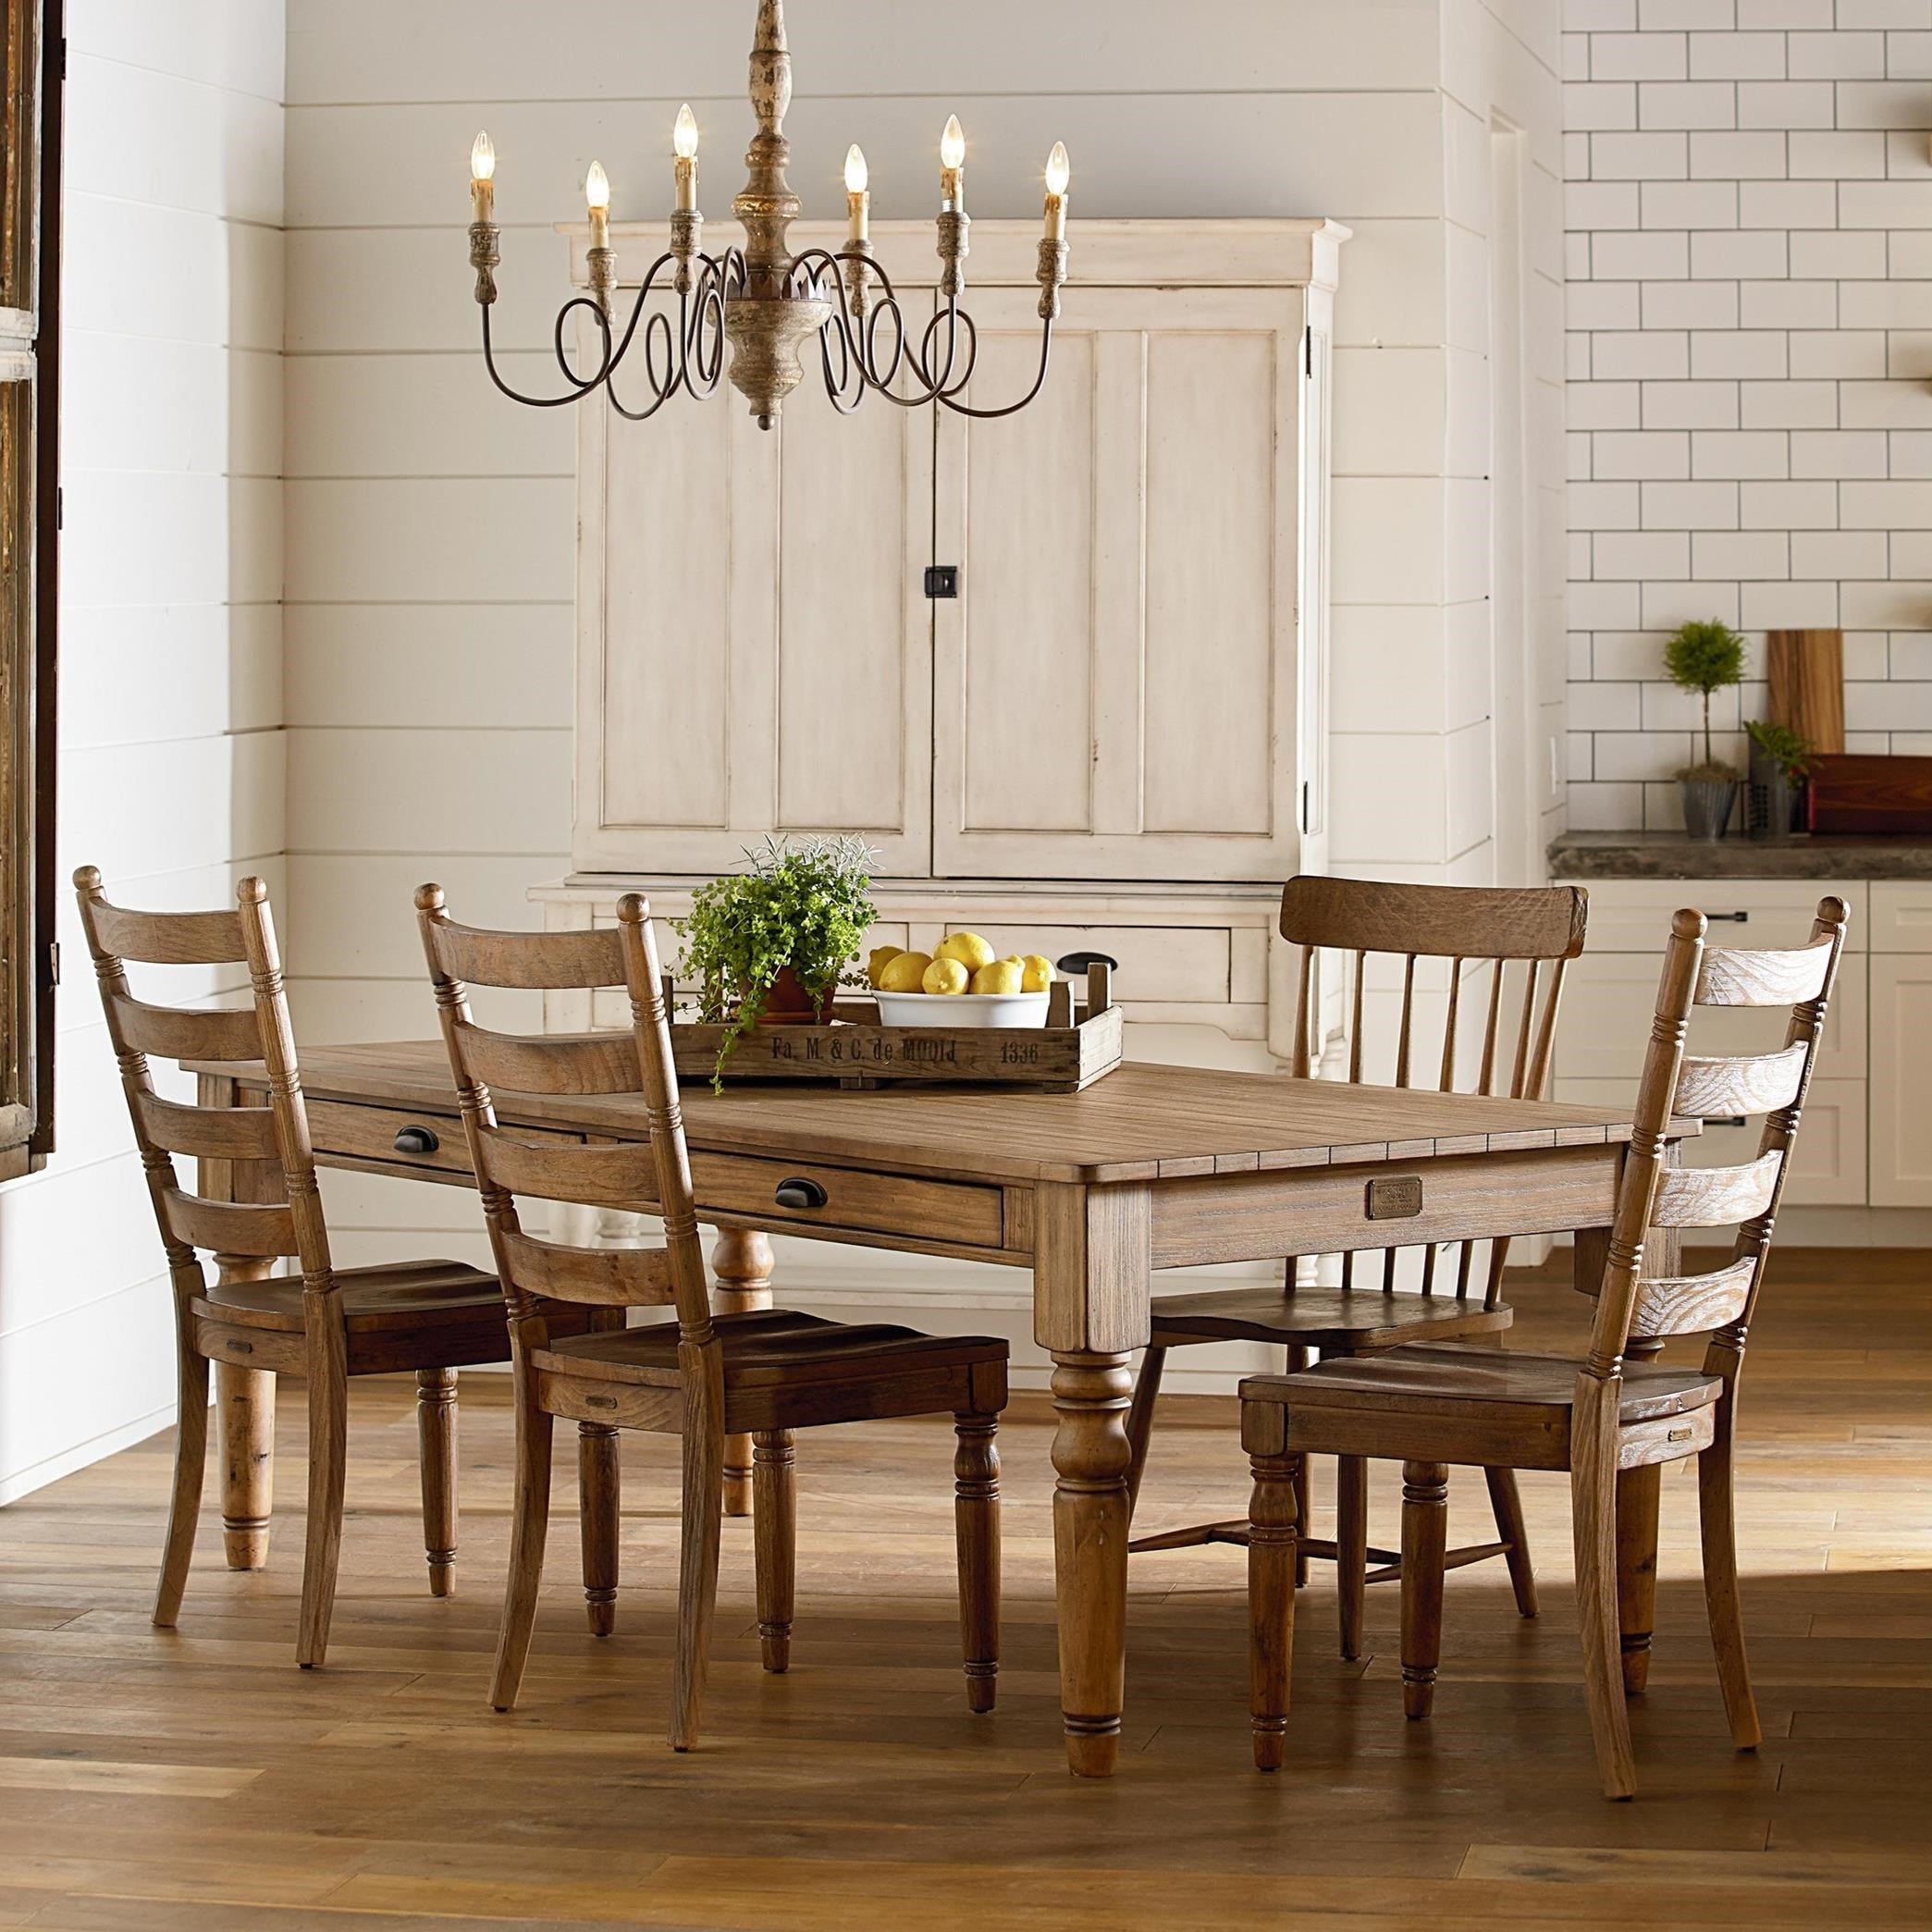 Primitive Dining Room Group By Magnolia Home By Joanna Gaines Wolf